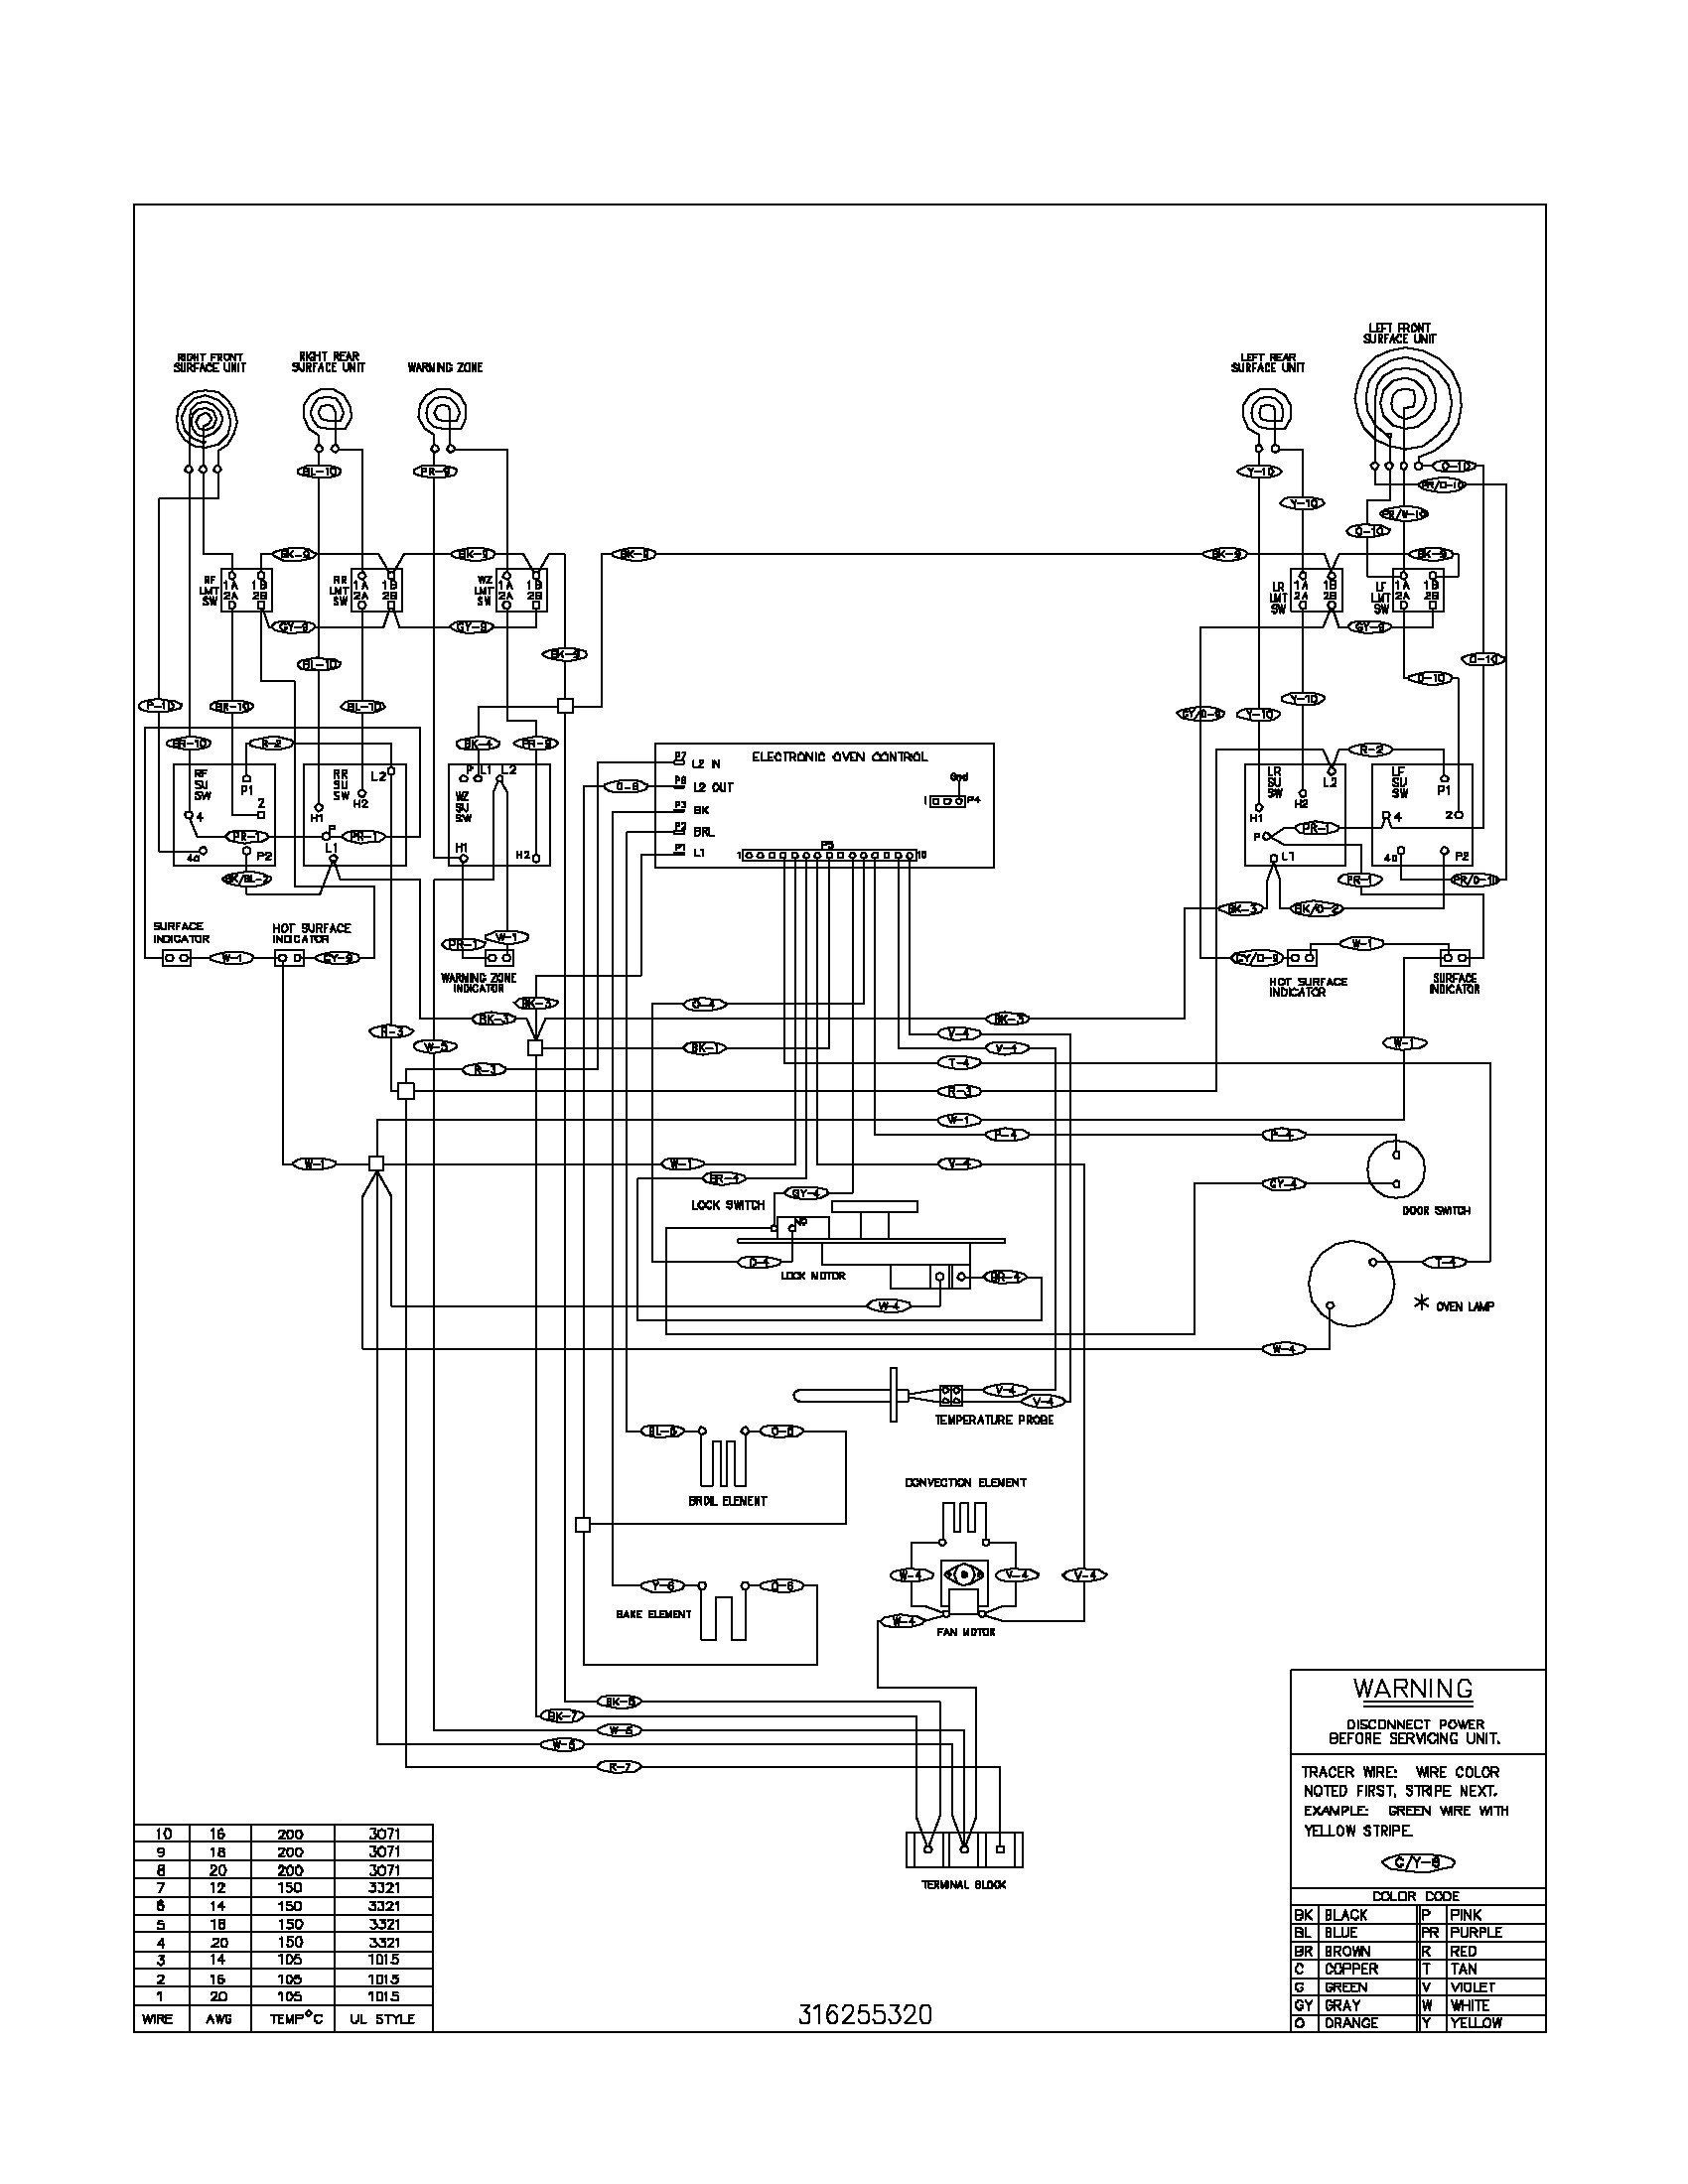 ge refrigerator wiring diagram Collection-Ge Refrigerator Wiring Diagram Ice Maker Fresh Wx15x12 1 2 Od Flared Fit Single – Fauowl 1-q